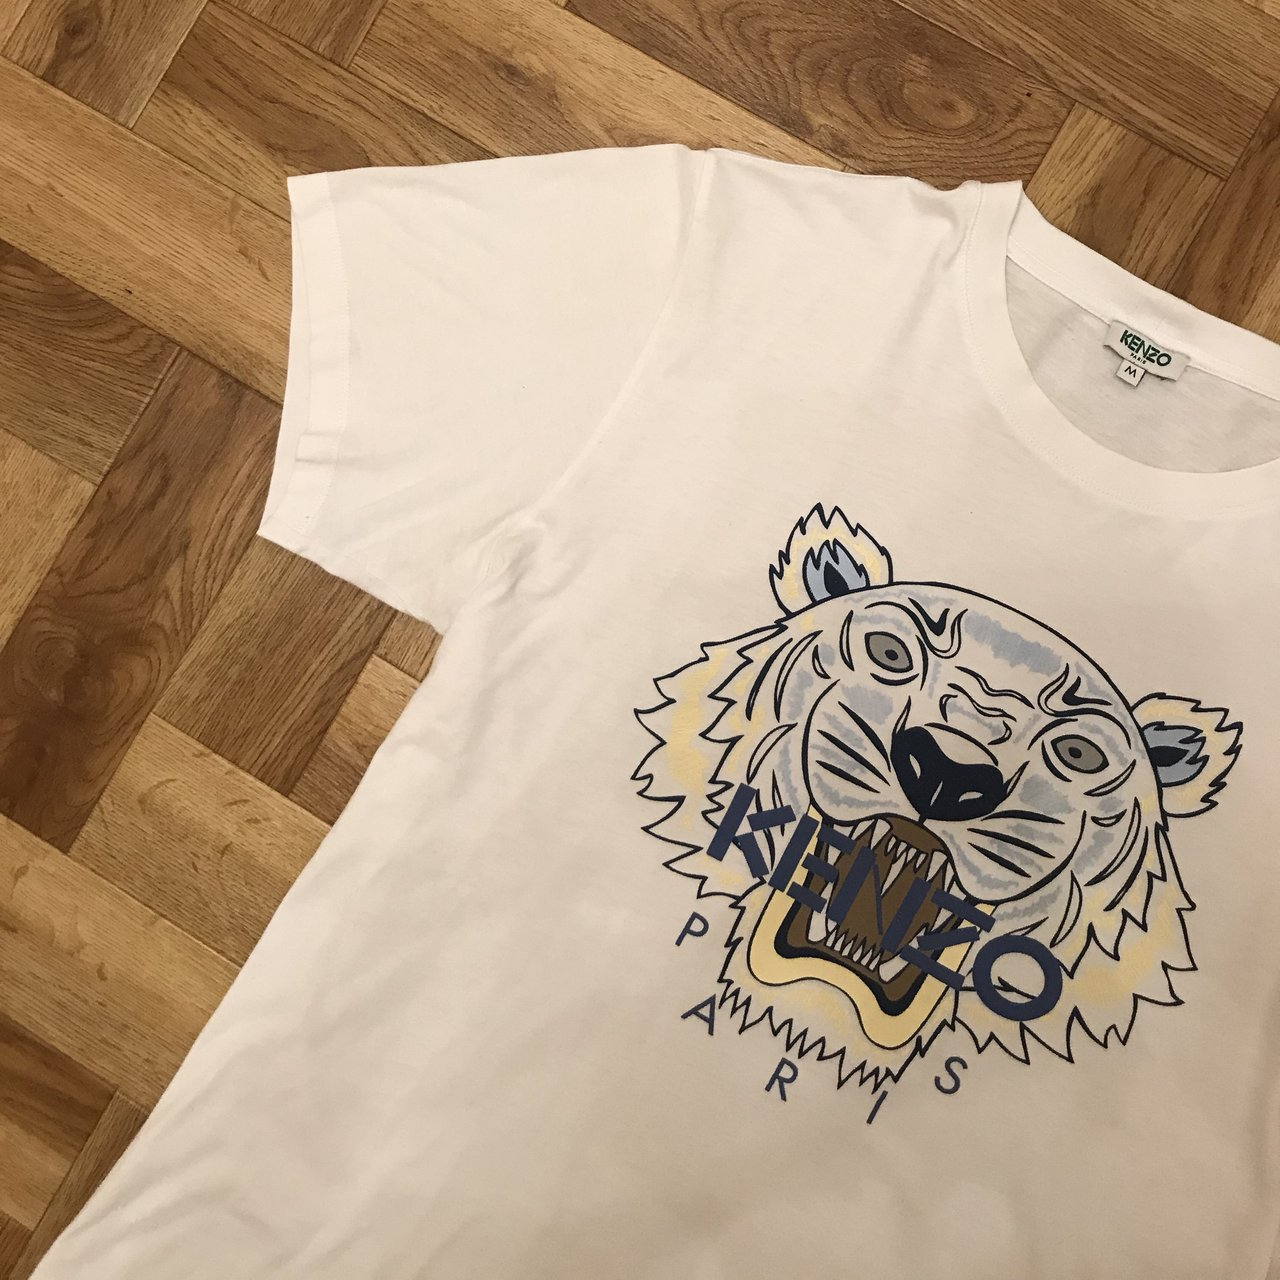 65423060 Kenzo Tiger Tee White/Blue/Yellow Size: M 10/10 only worn - Depop